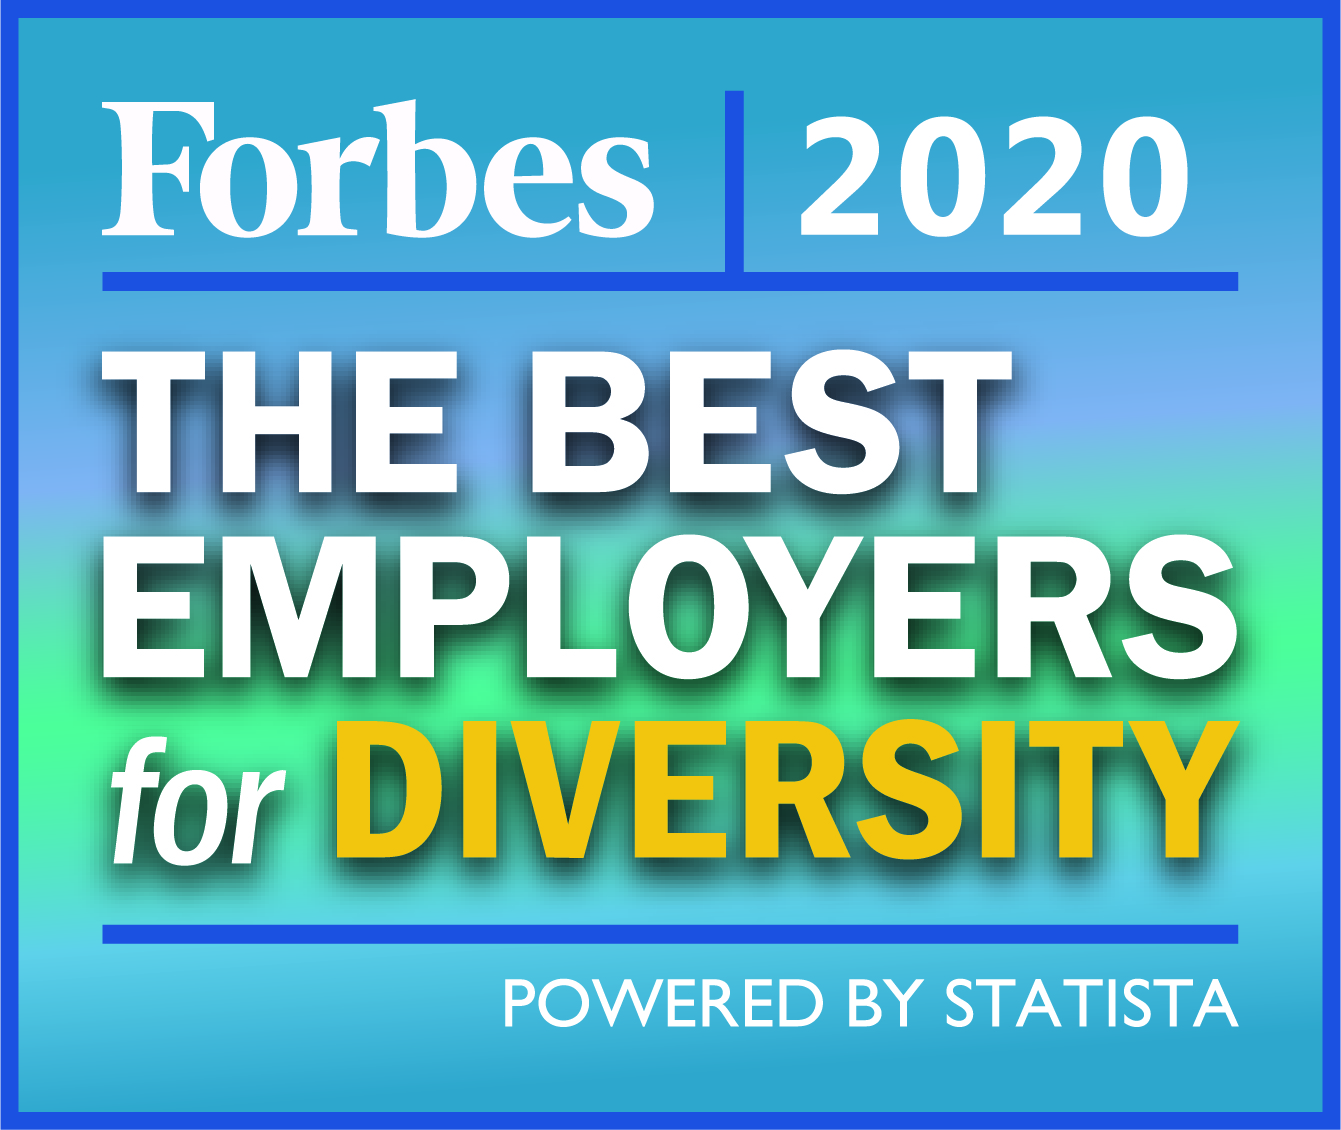 Forbes 2020 - The Best Employee for Diversity